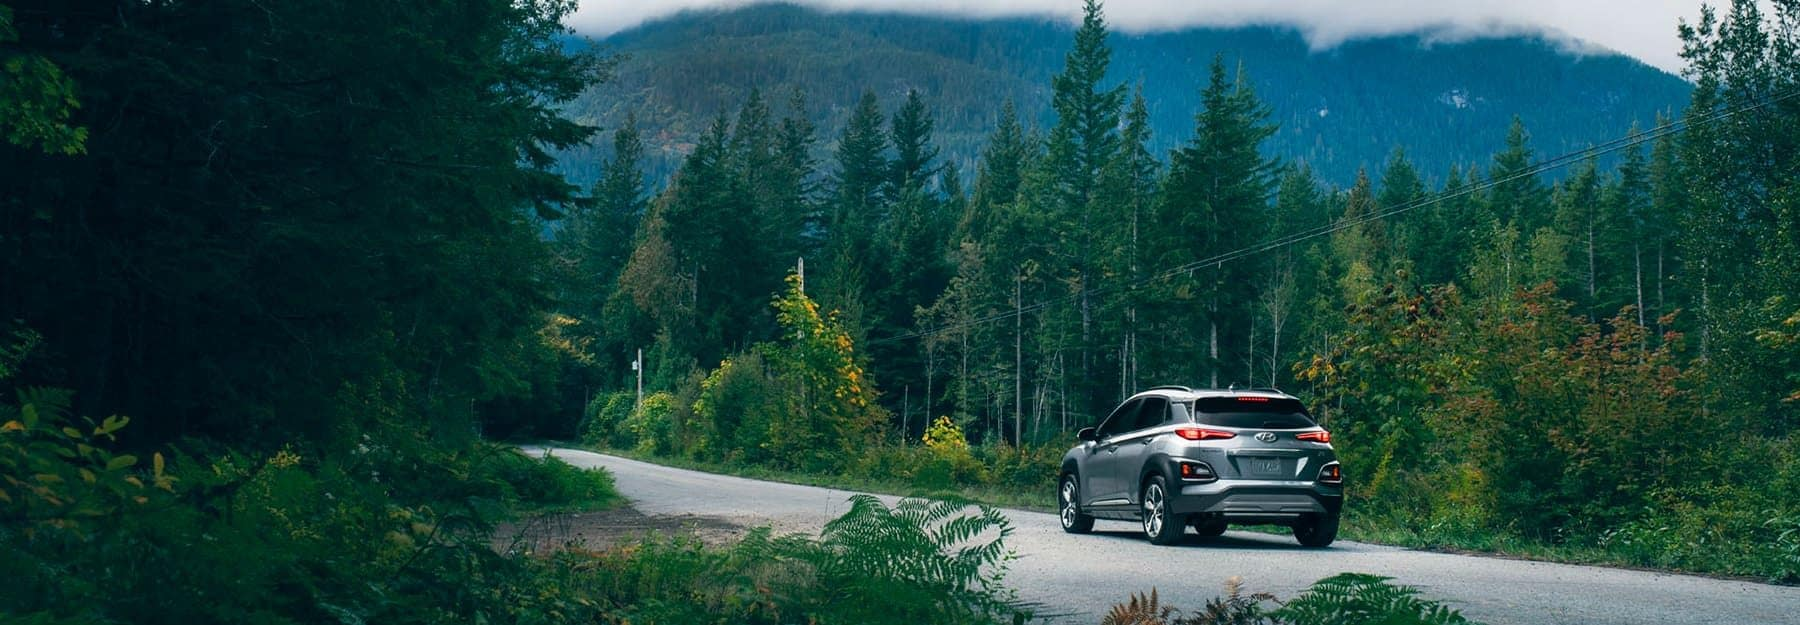 A silver Hyundai SUV driving down a road surrounded by trees